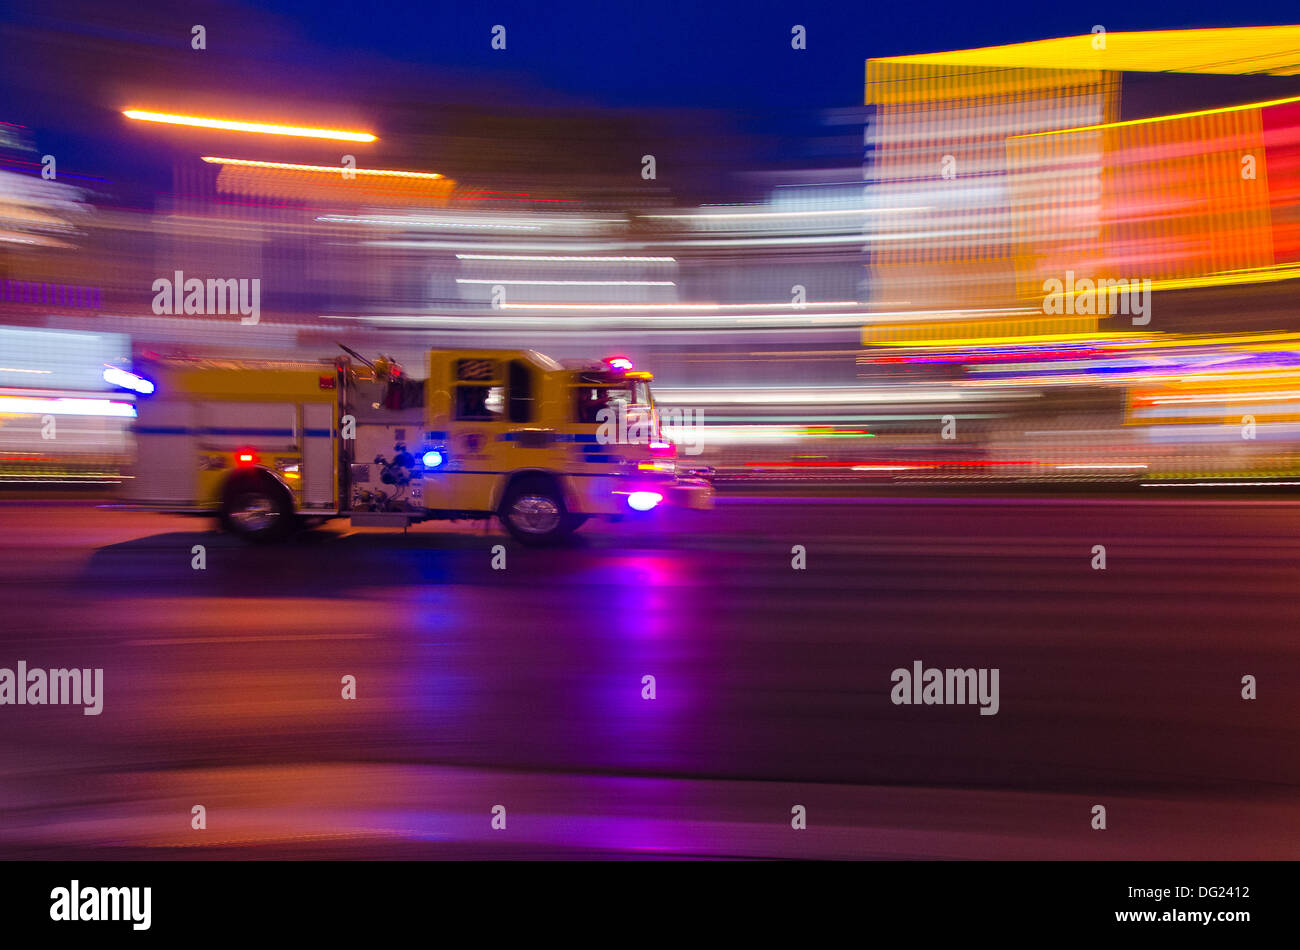 Firetruck rushes to an an incident along Las Vegas Boulevard with significant motion blur against a night sky background of illuminated buildings - Stock Image